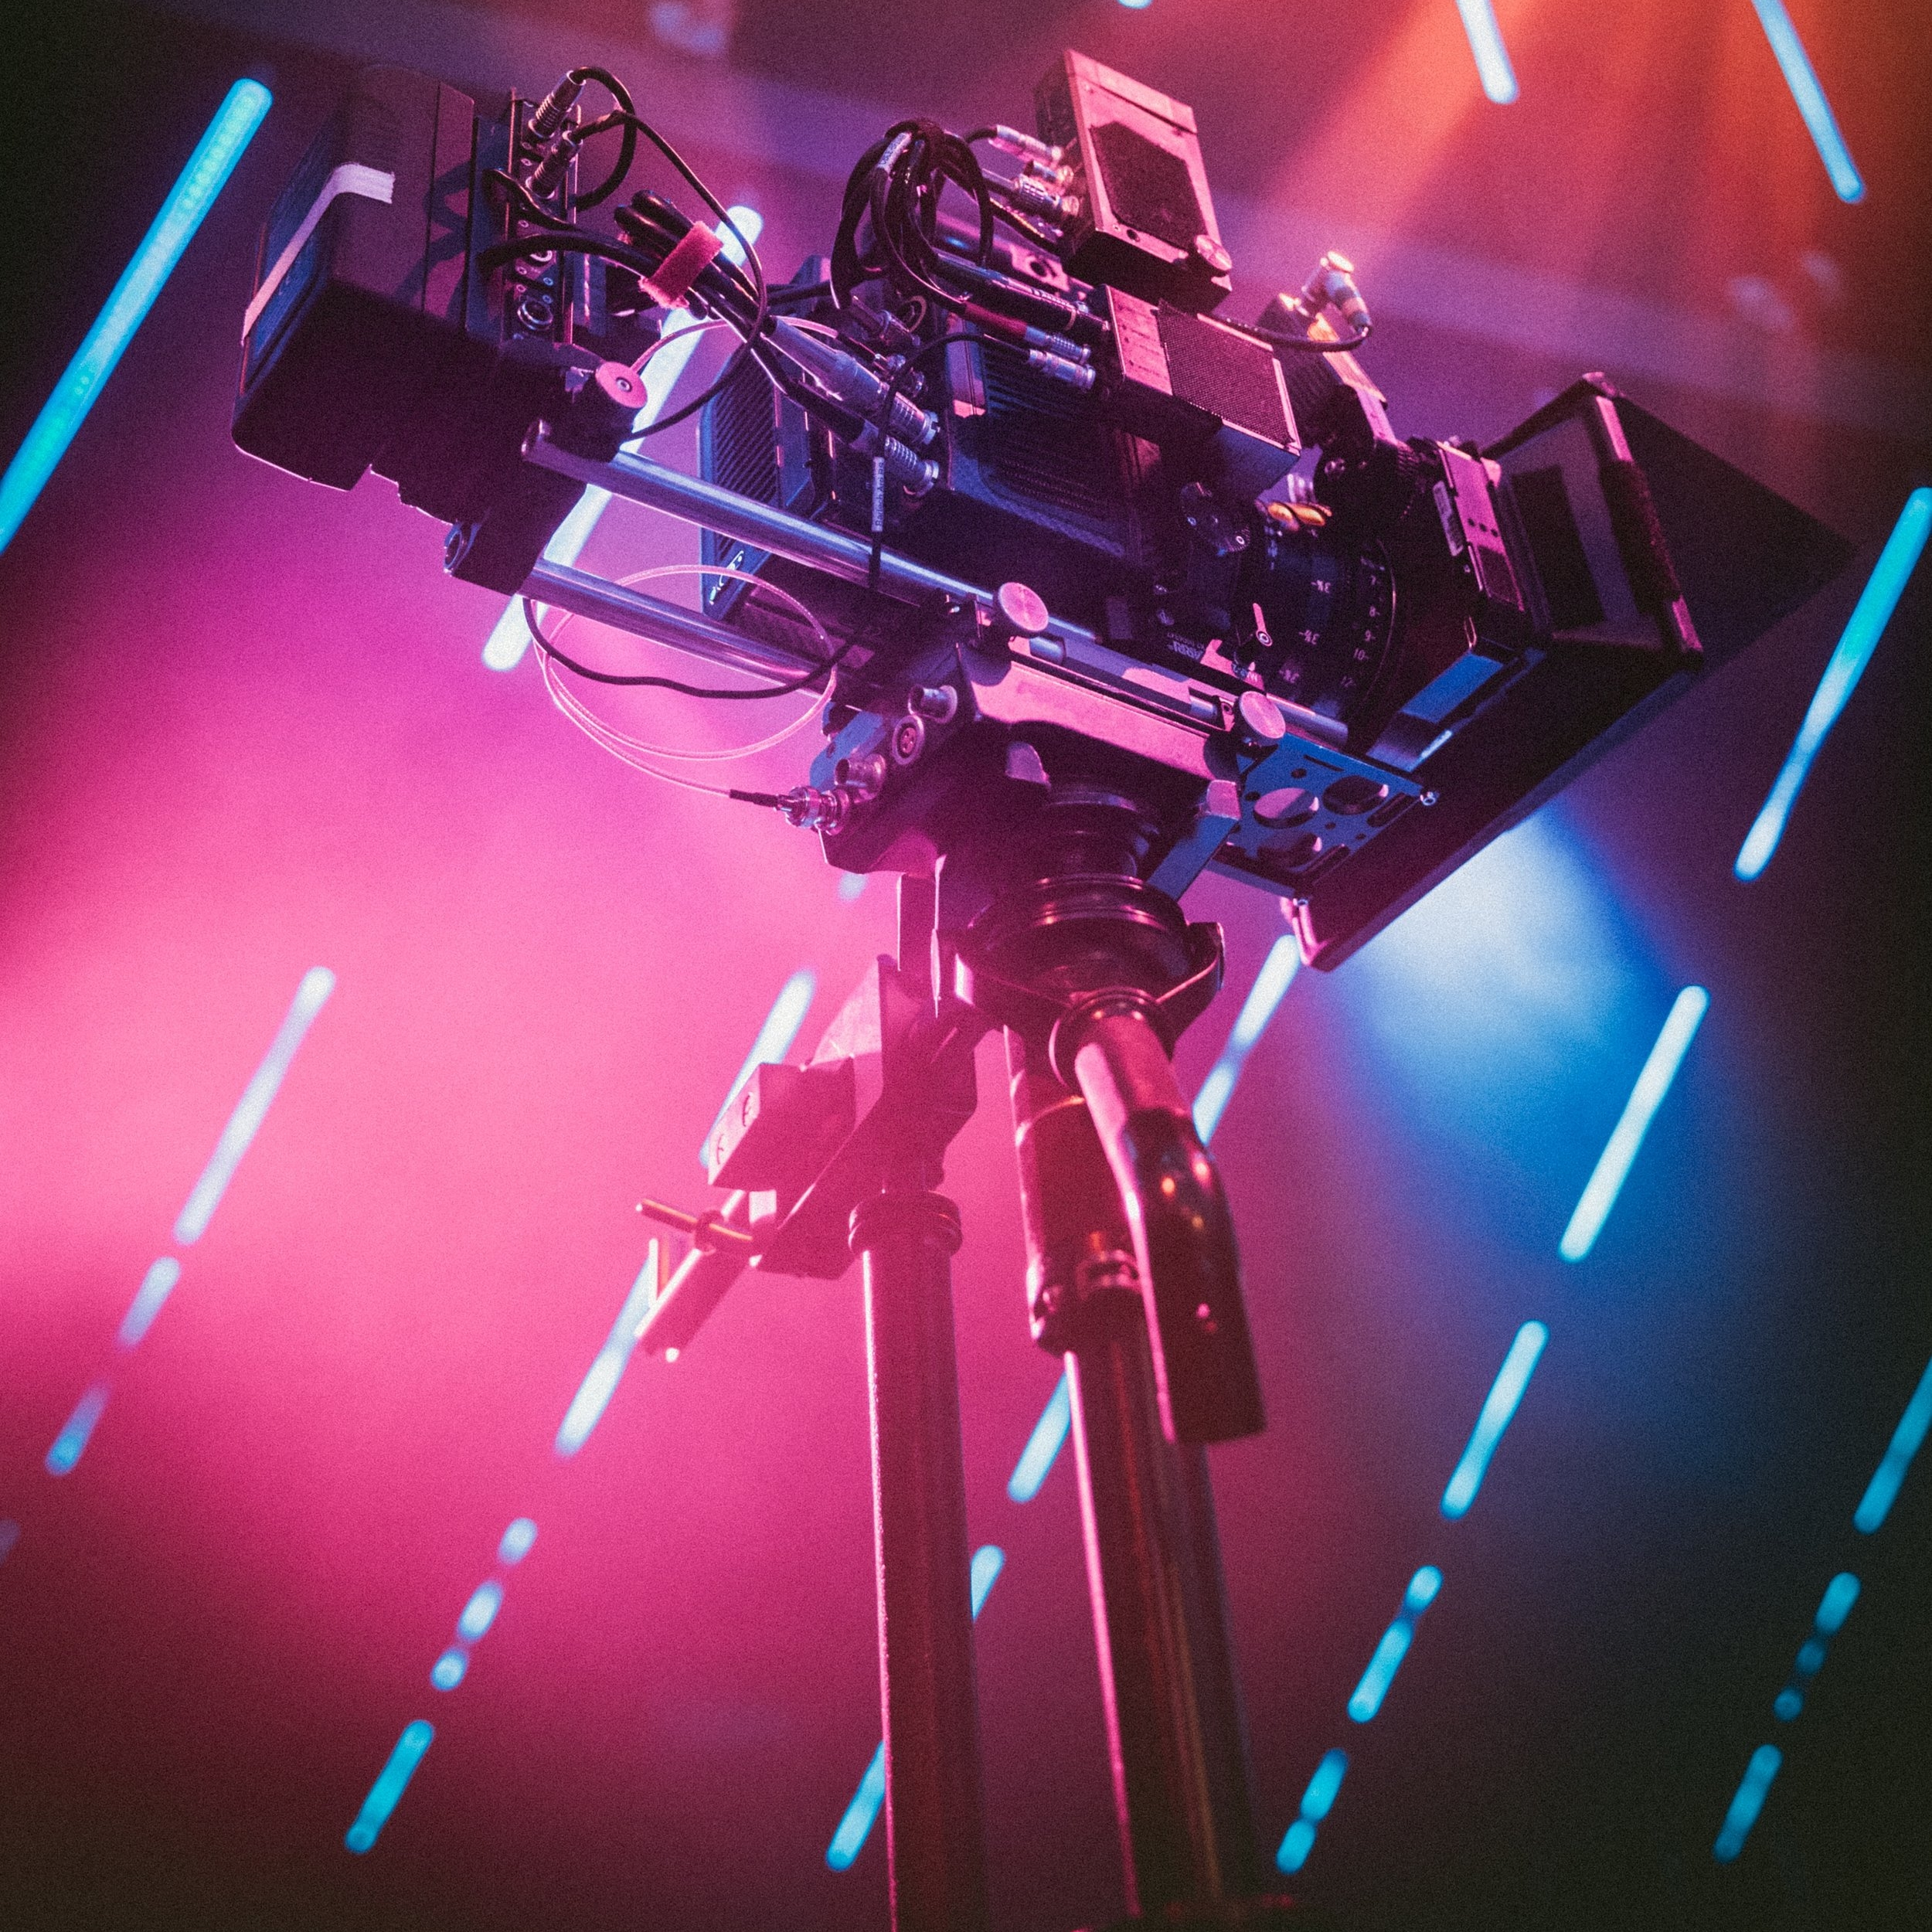 EXHAUSTED OF THE DEMANDS OF FILMMAKING? -